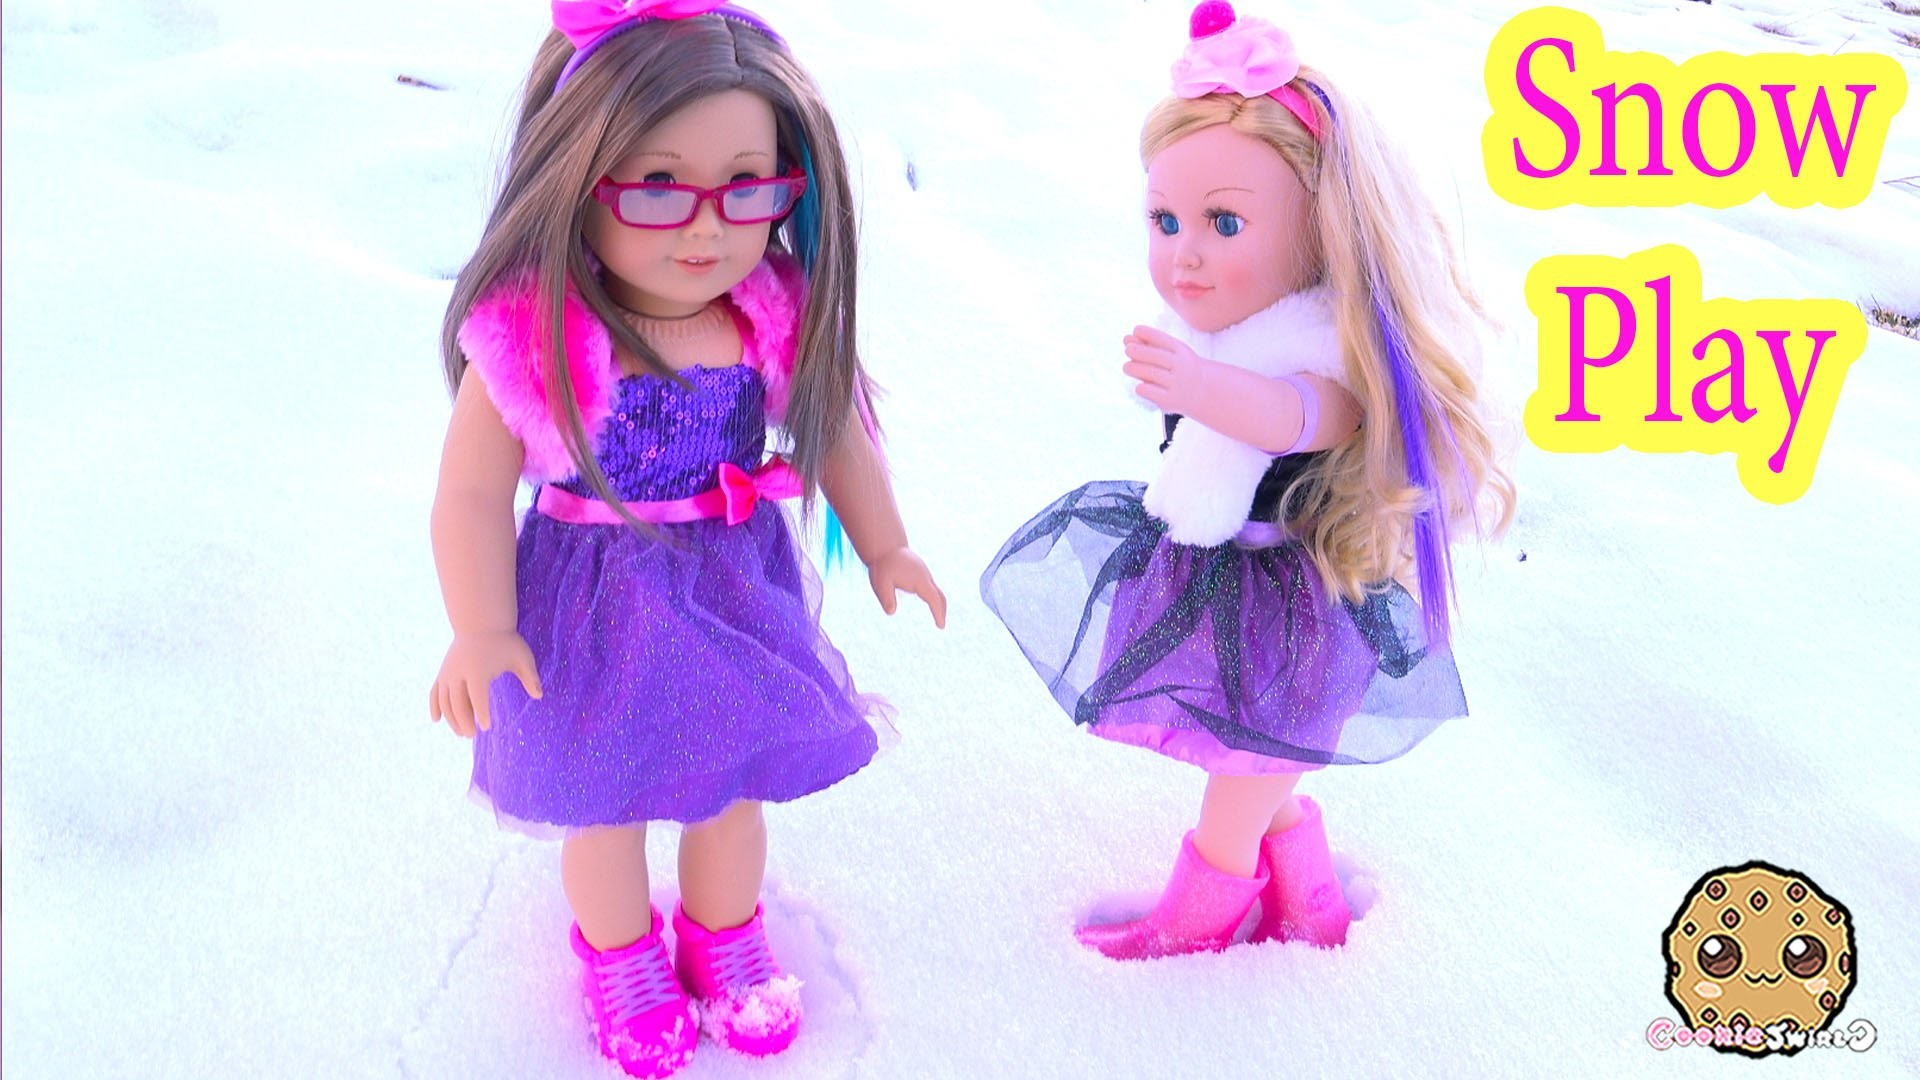 Snow Play Boots + Dresses Clothing Review for American Girl + My Life As  Cupcake Baker Doll – YouTube